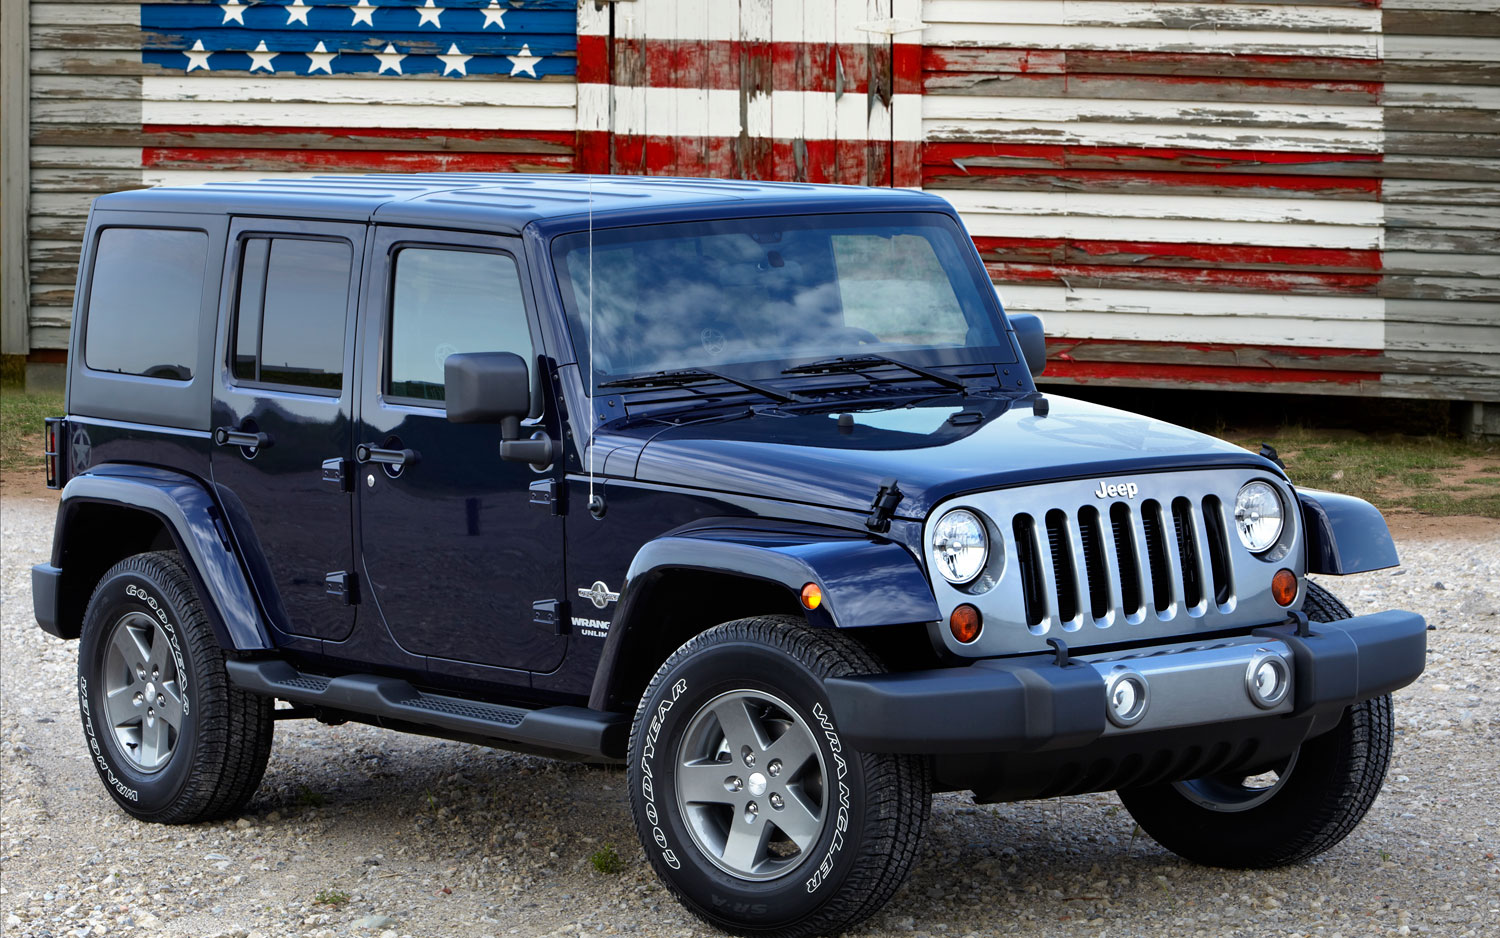 2012-Jeep-Wrangler-Freedom-Edition-front-three-quarter-in-front-of-American-flag